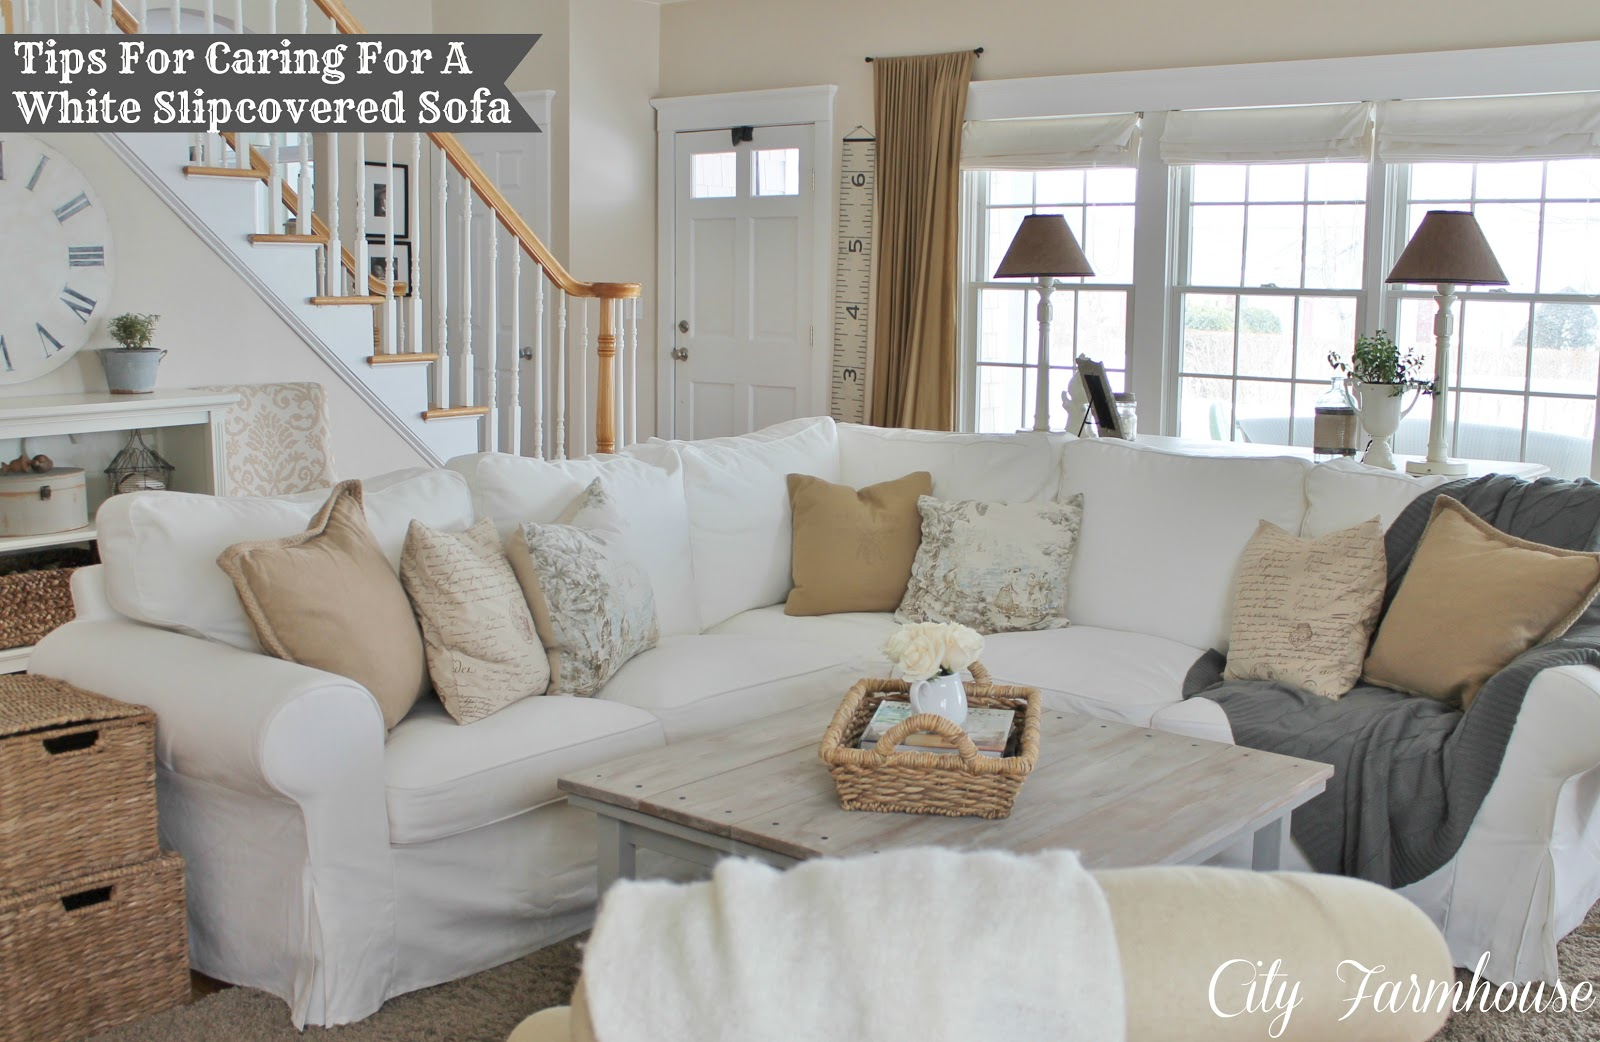 Real Life With A White Slipcover Amp Keeping It Pretty City Farmhouse